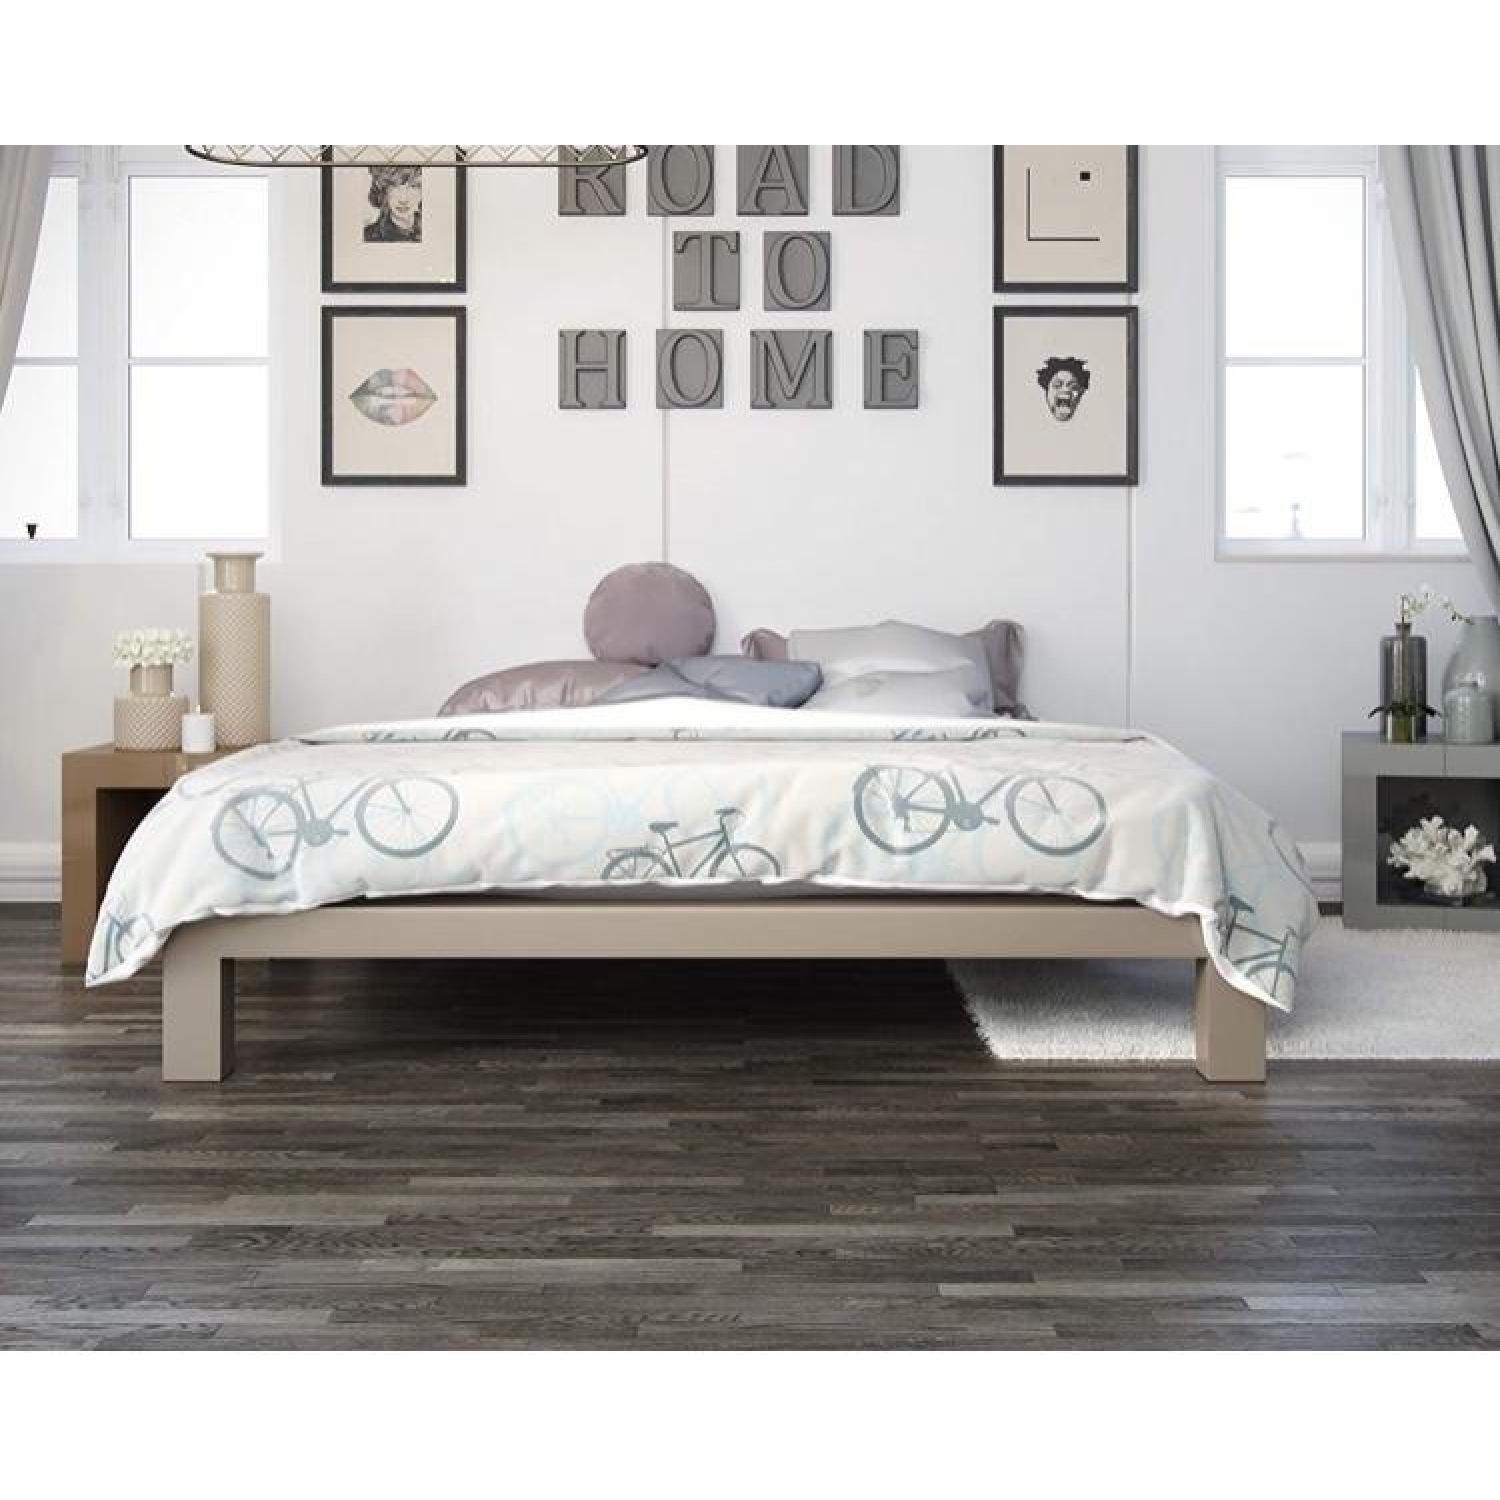 Queen Bed Frame Metal Platform Queen Bed Frame In Champagne